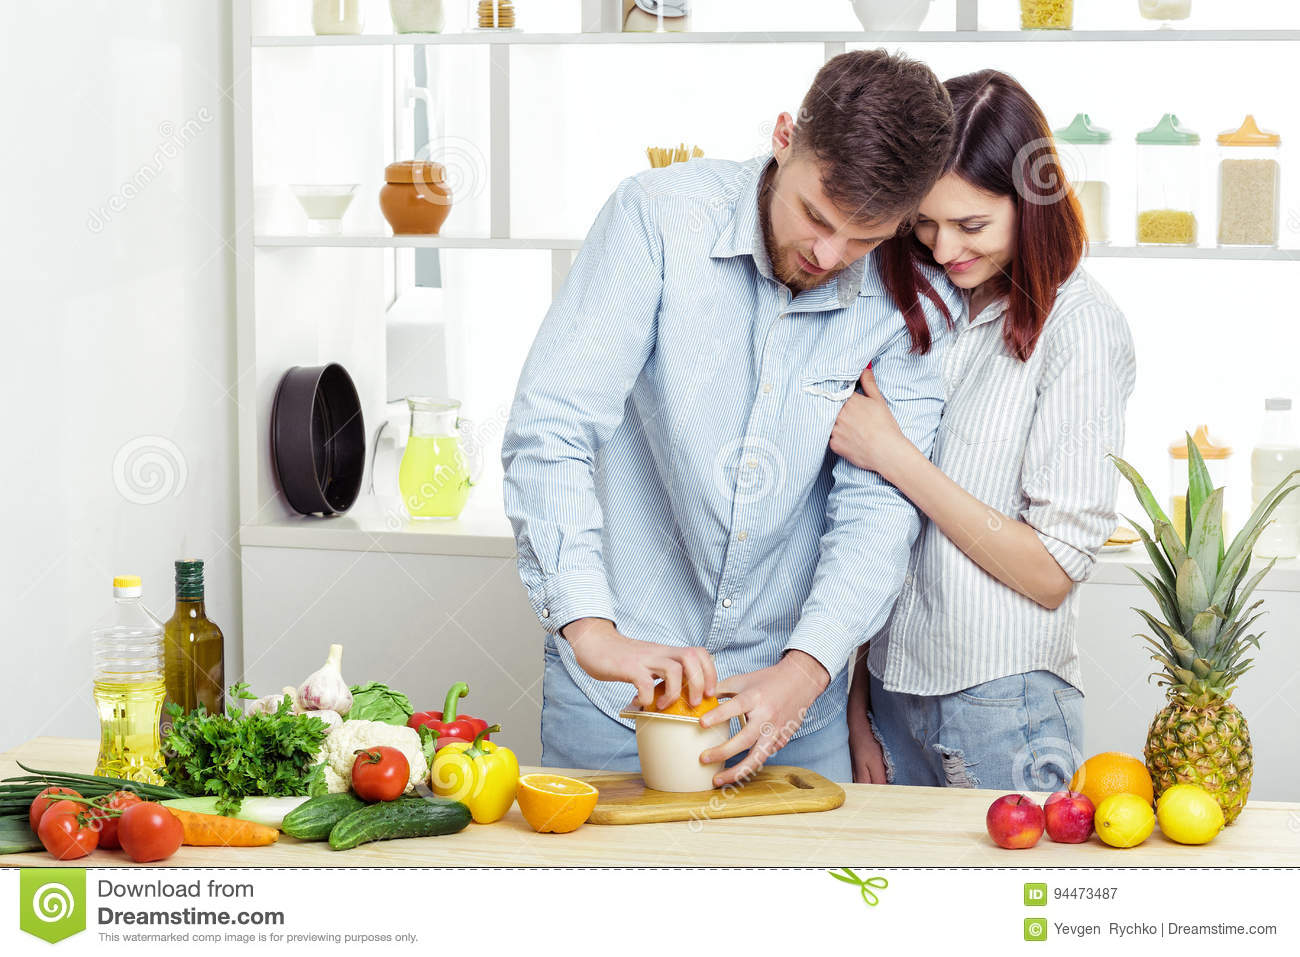 Happy c ouple in love in kitchen making healthy juice from fresh orange